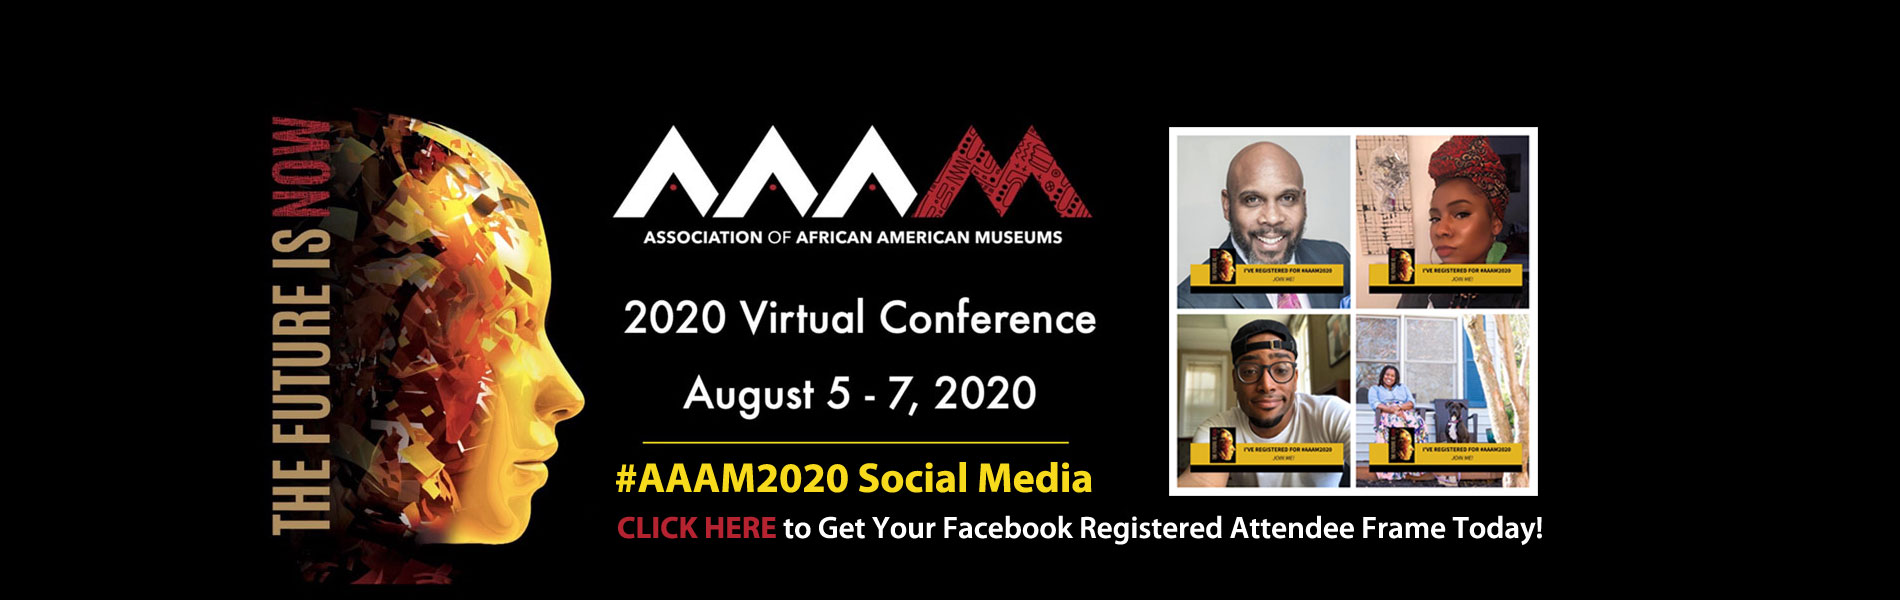 2020 AAAM conference facebook frame